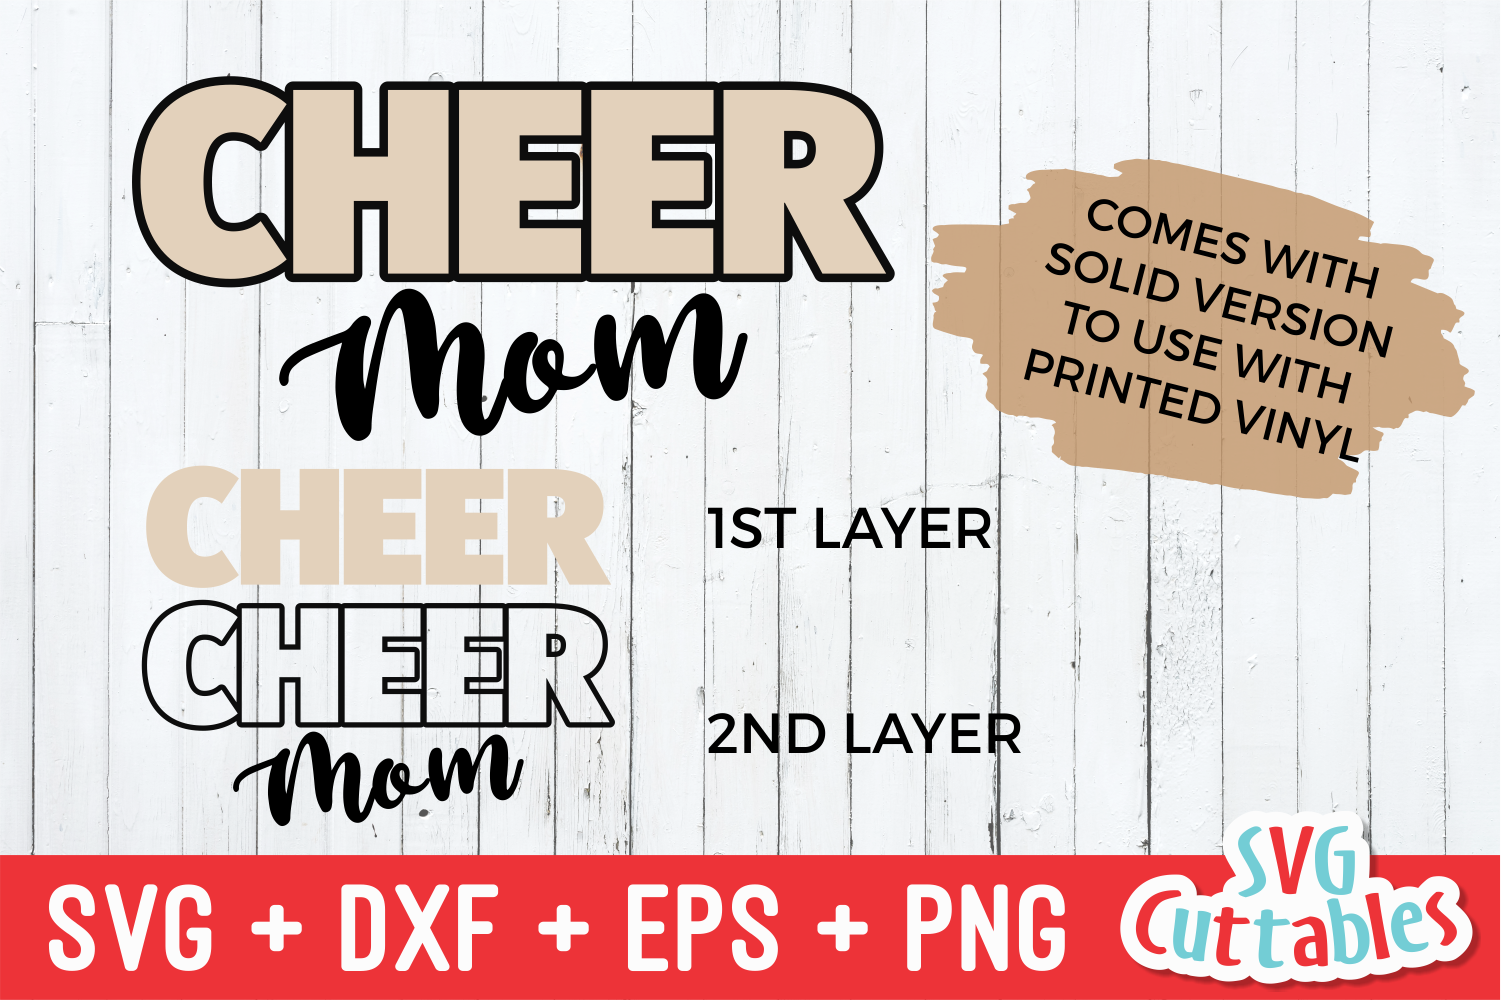 Cheer Mom Leopard Print | SVG Cut File example image 3